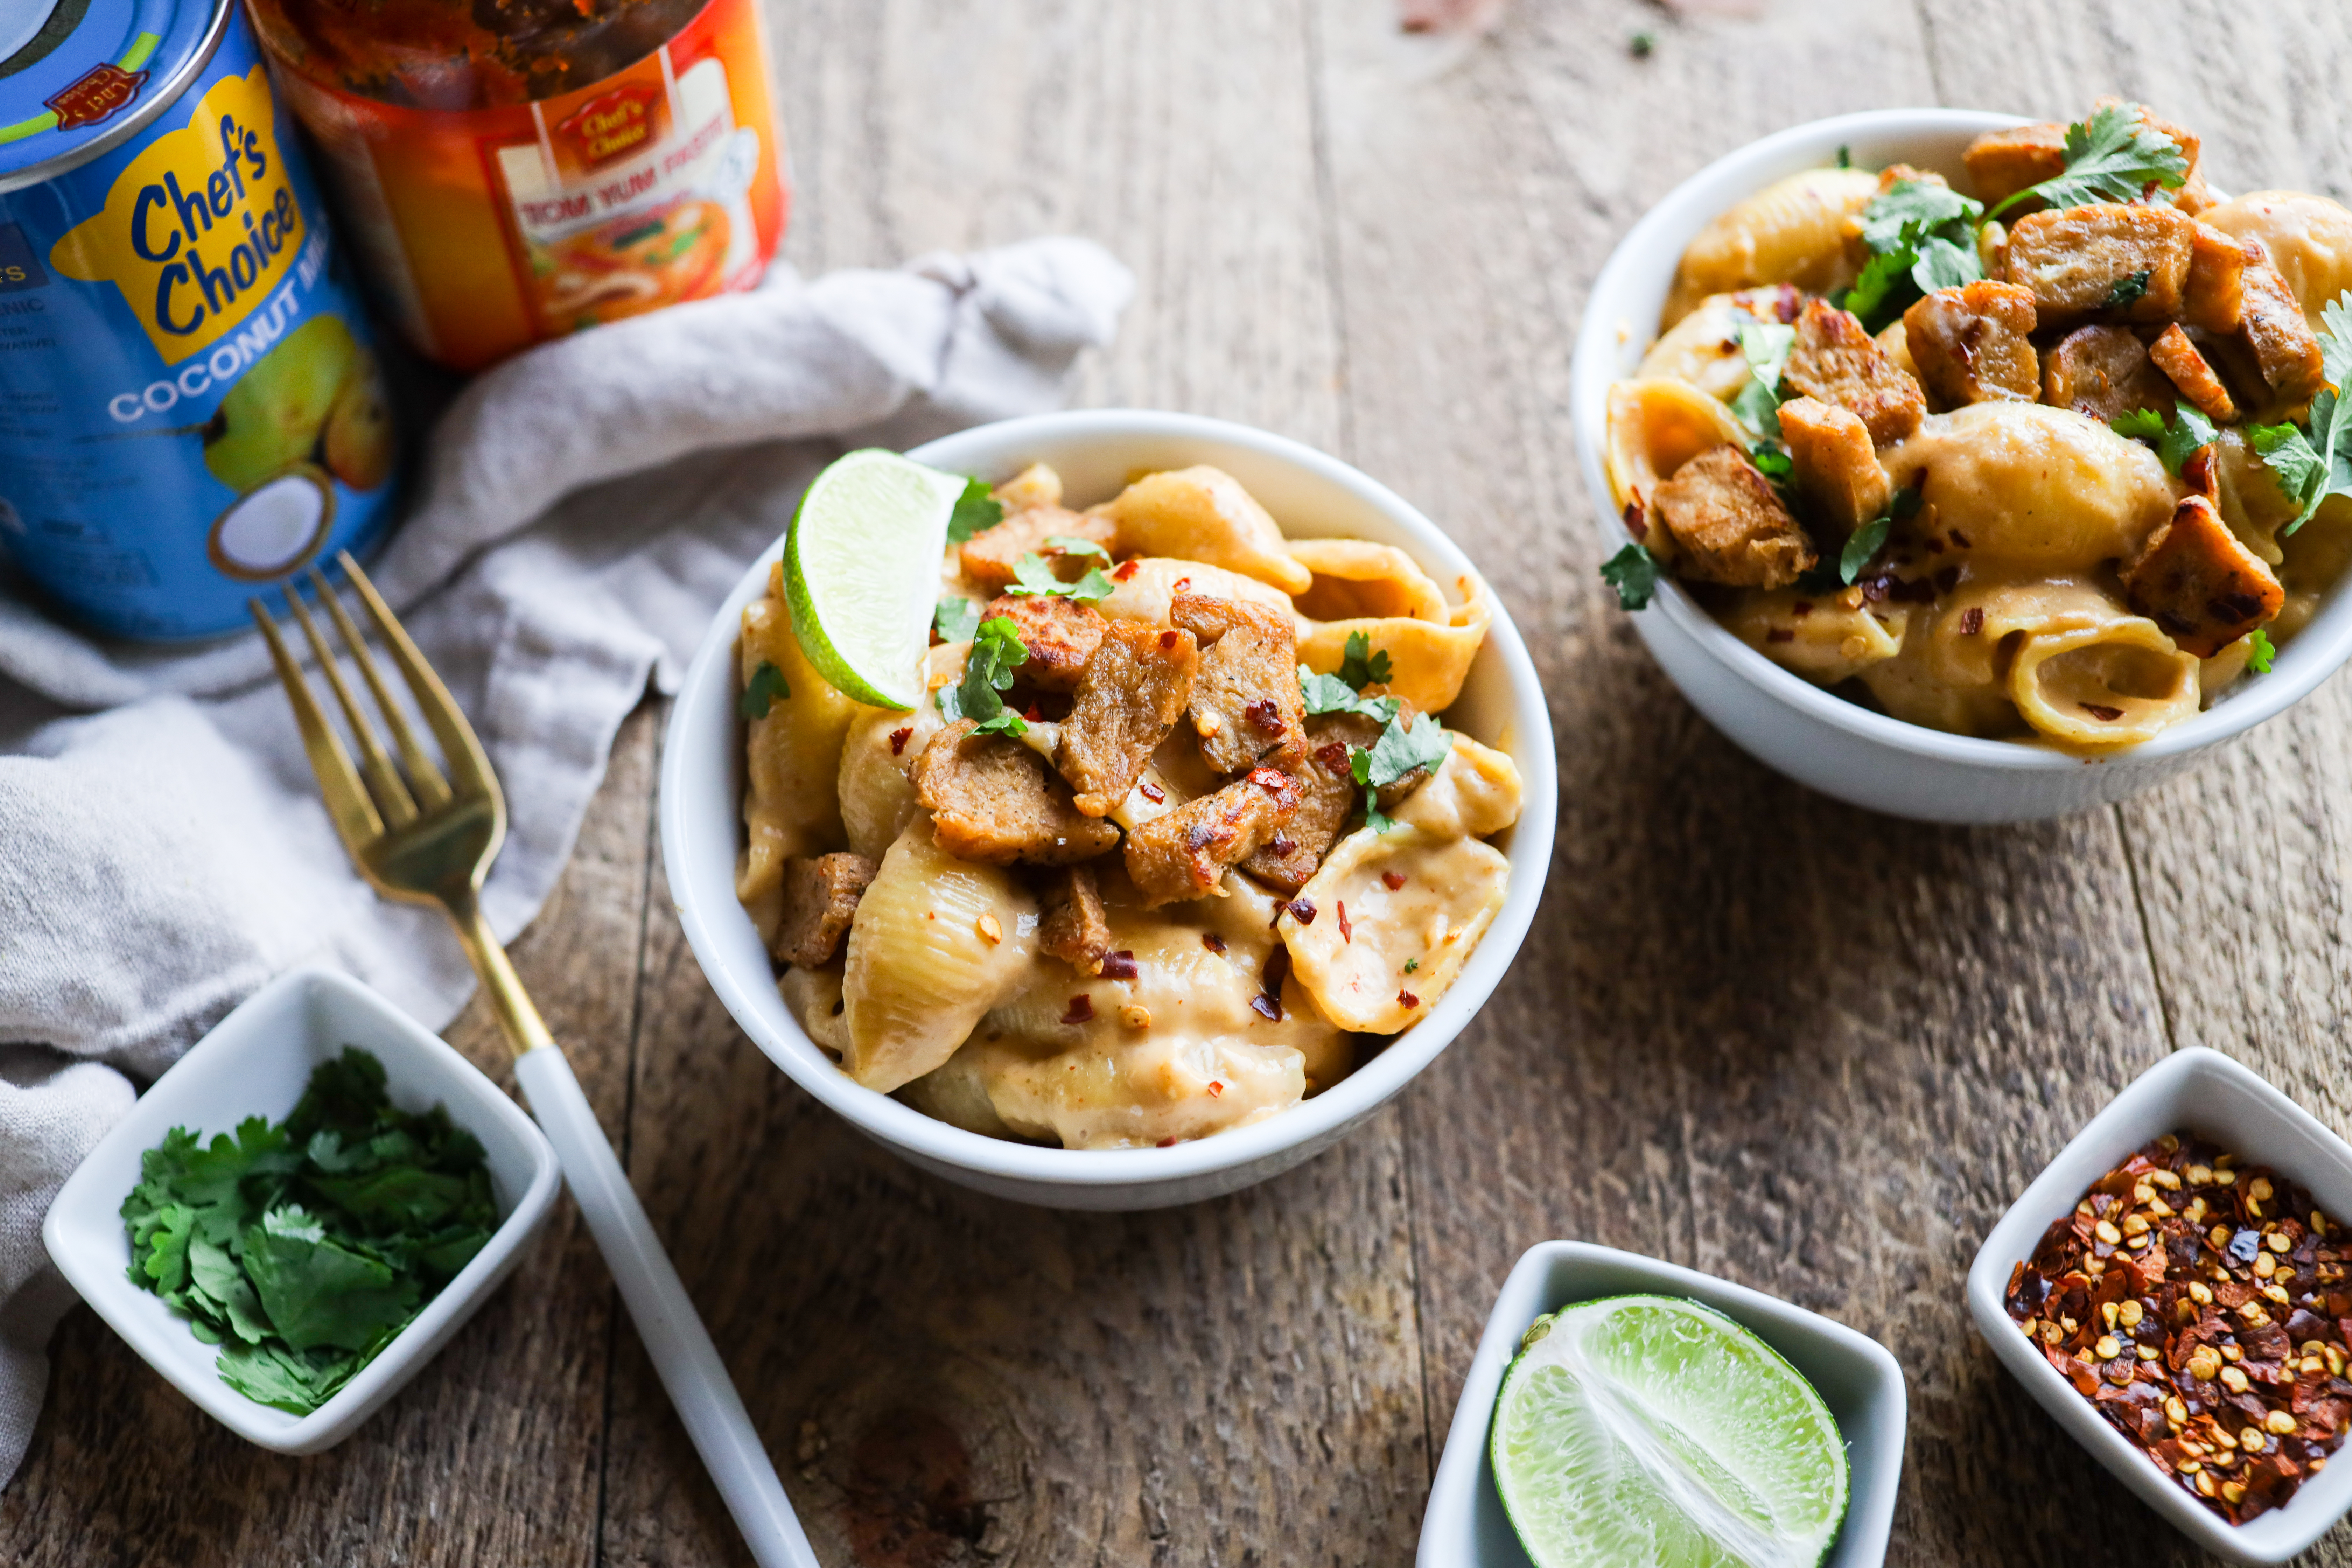 Creamy, flavorful Vegan Tom Yum Mac & Cheese! Kid-friendly and ready in just 20 minutes. #plantbased #glutenfree easy dinner recipe